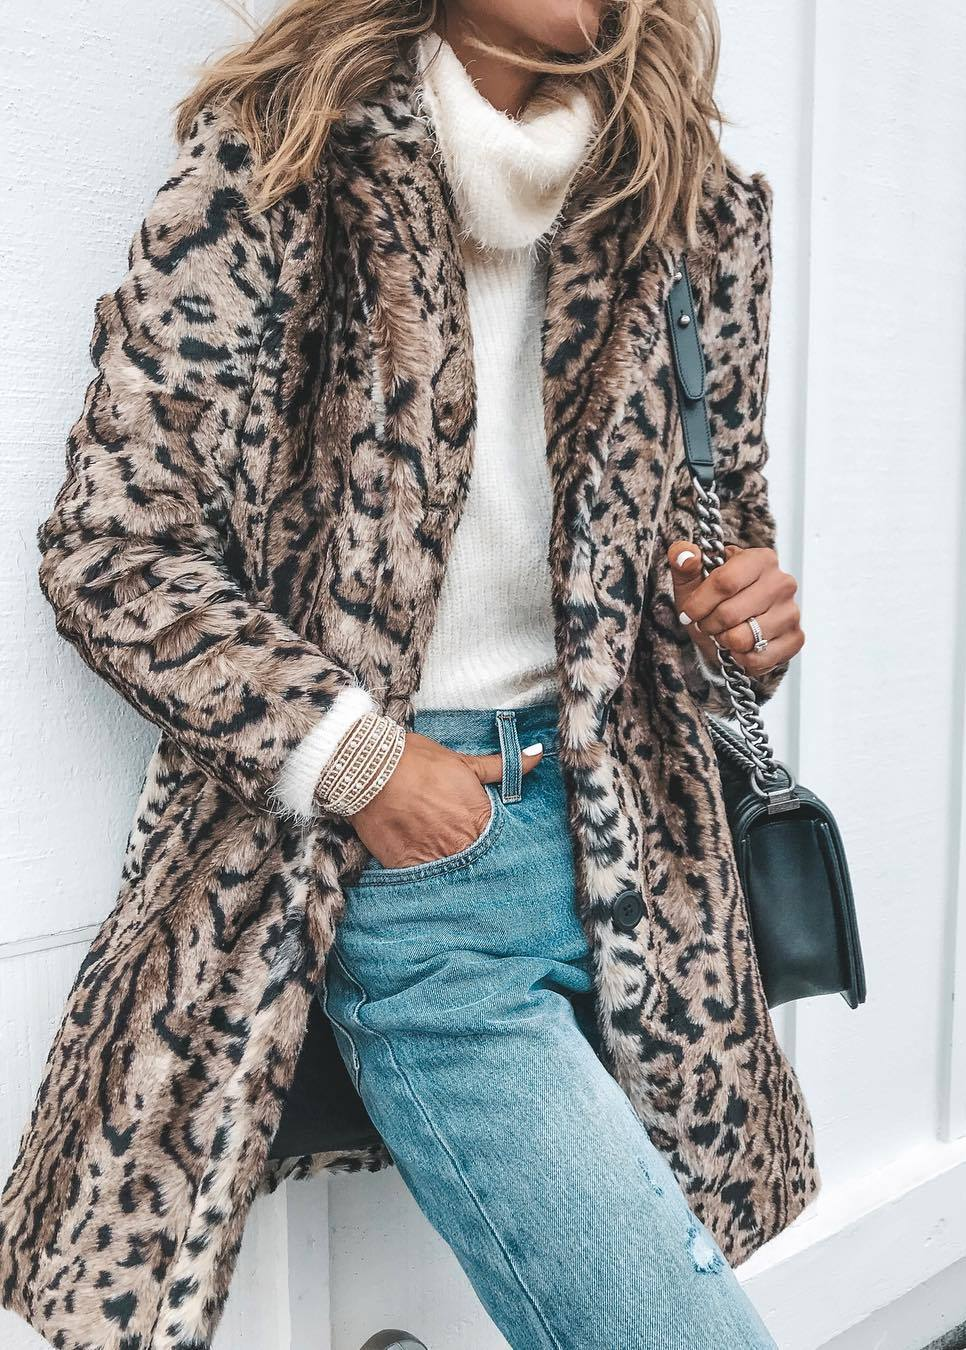 how to style a leopard coat : white sweater + boyfriend jeans